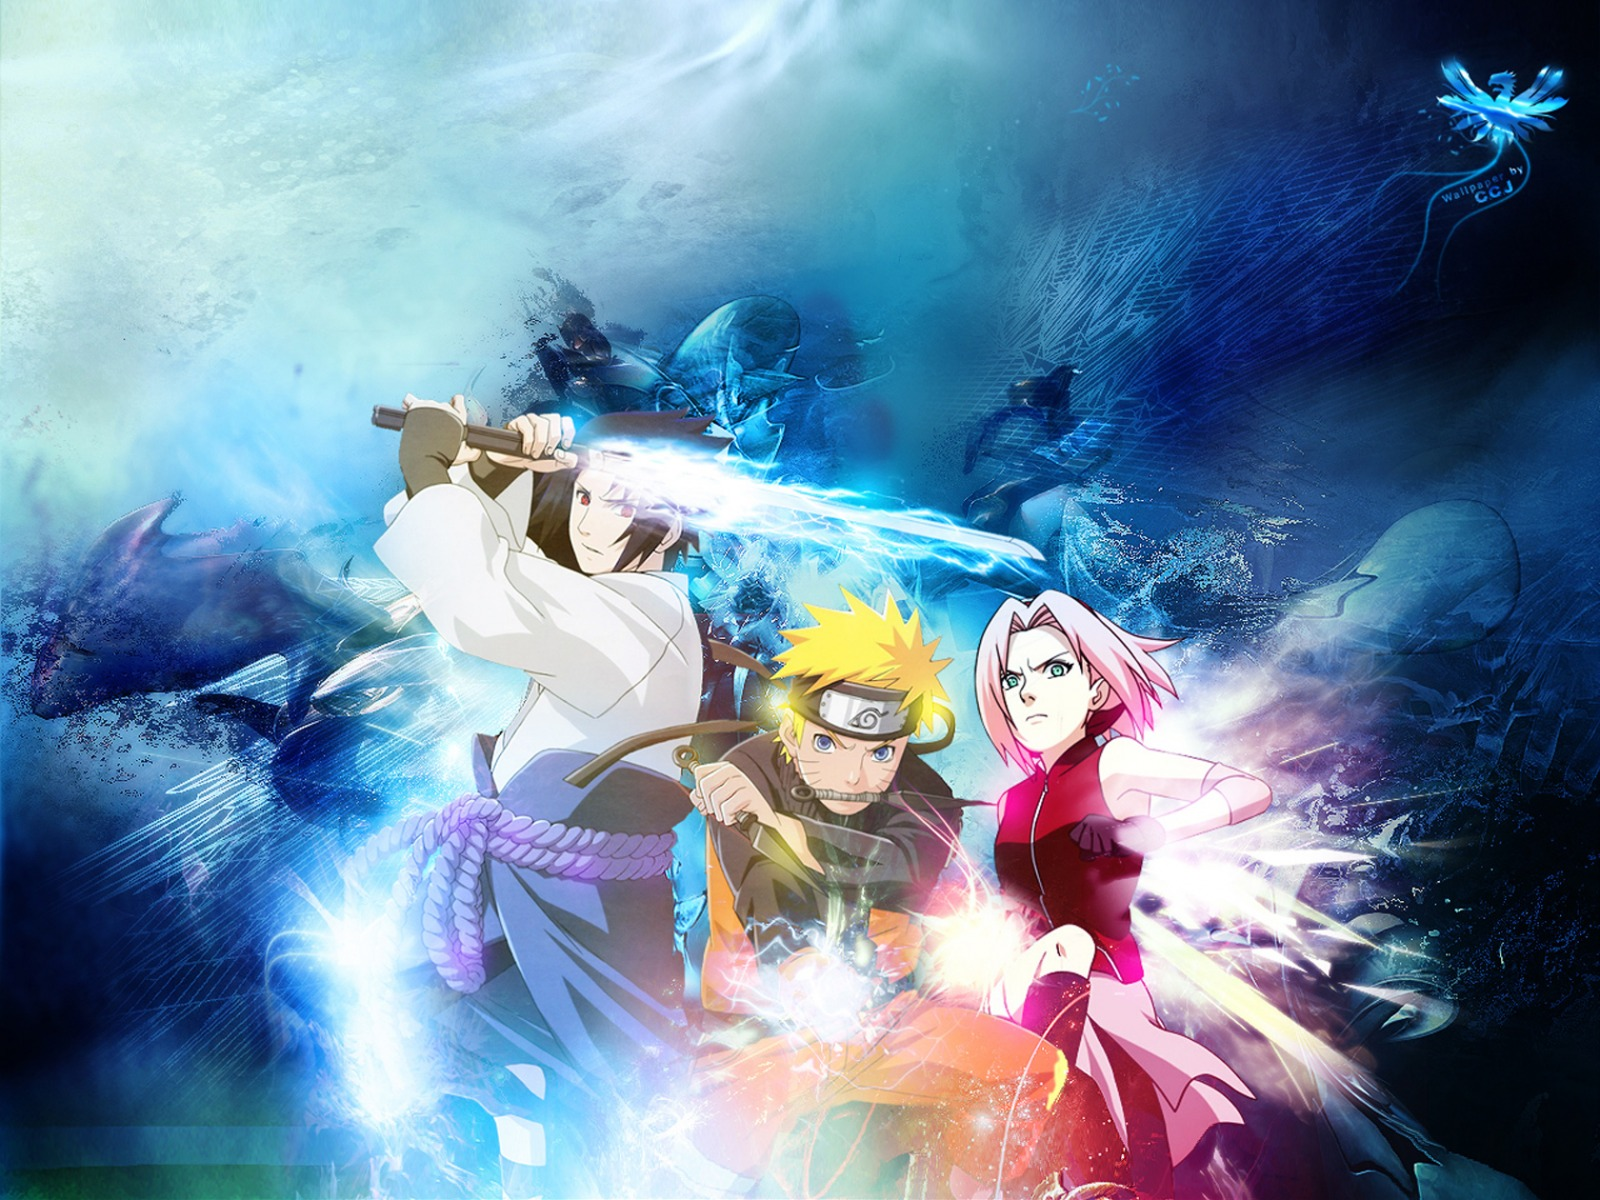 The Best Top Hd Desktop Naruto Shippuden Wallpaper Naruto Shippuden Wallpapers Hd 17